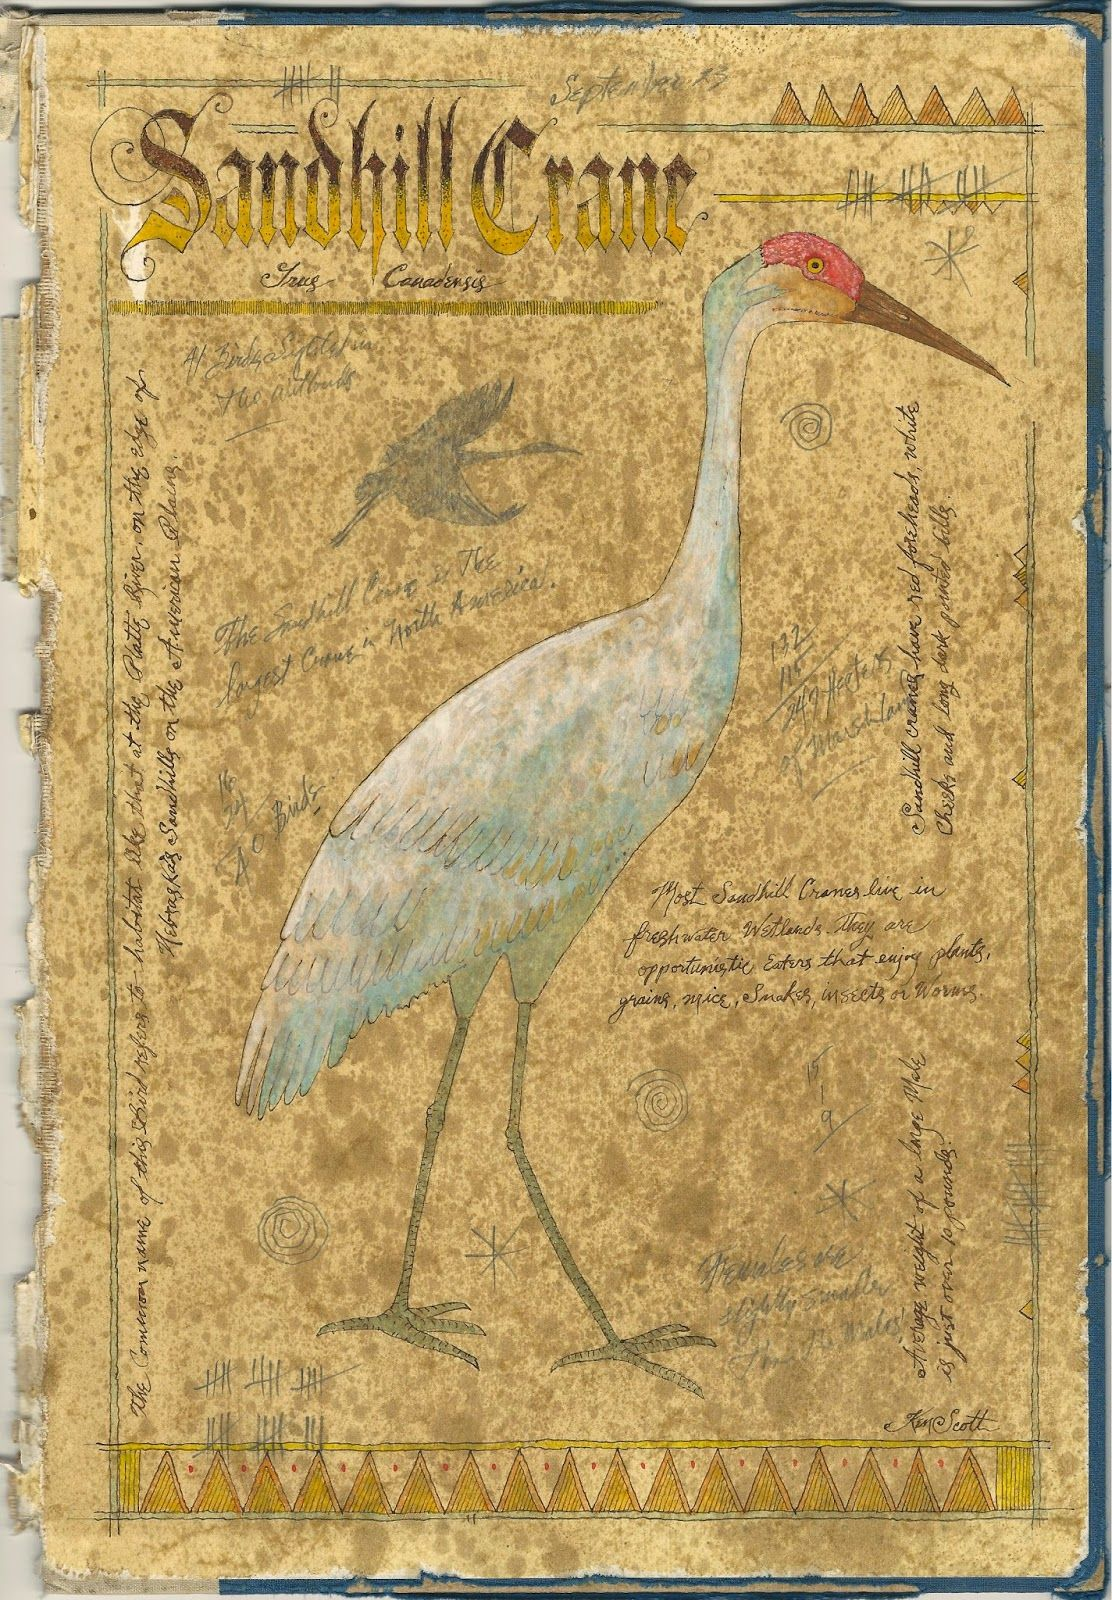 Watercolor books for sale - Here Is An Century Naturalist Painting Of A Sandhill Crane Ink Watercolor Graphite On The I